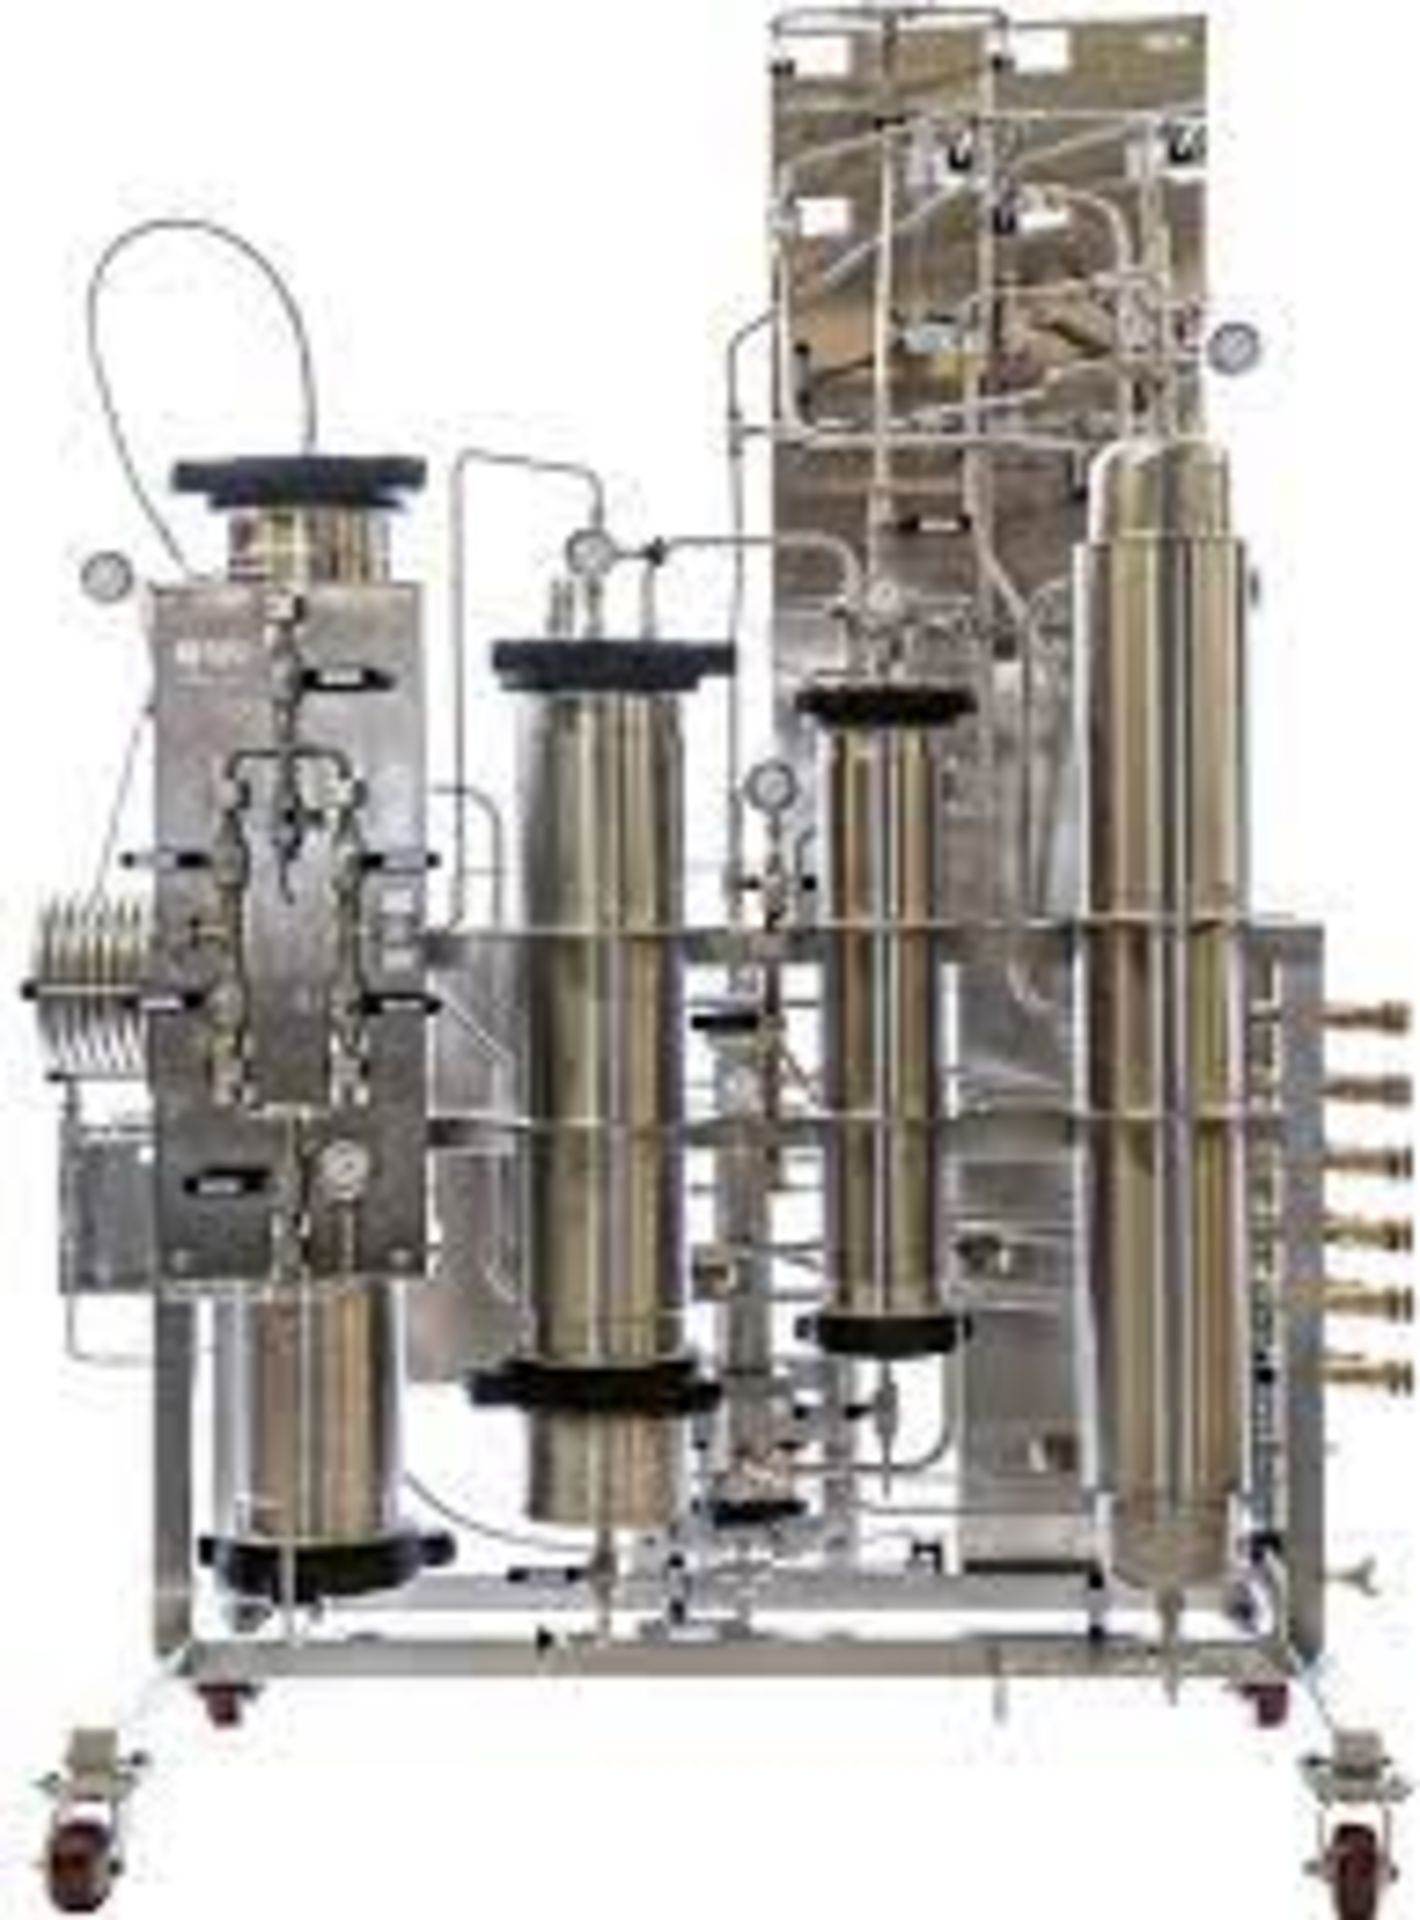 Used Eden Labs FX2 Hi-Flo 20 Liter 2,000 psi CO2 Extractor w/ Large Self-Sufficiency Kit Included - Image 4 of 6